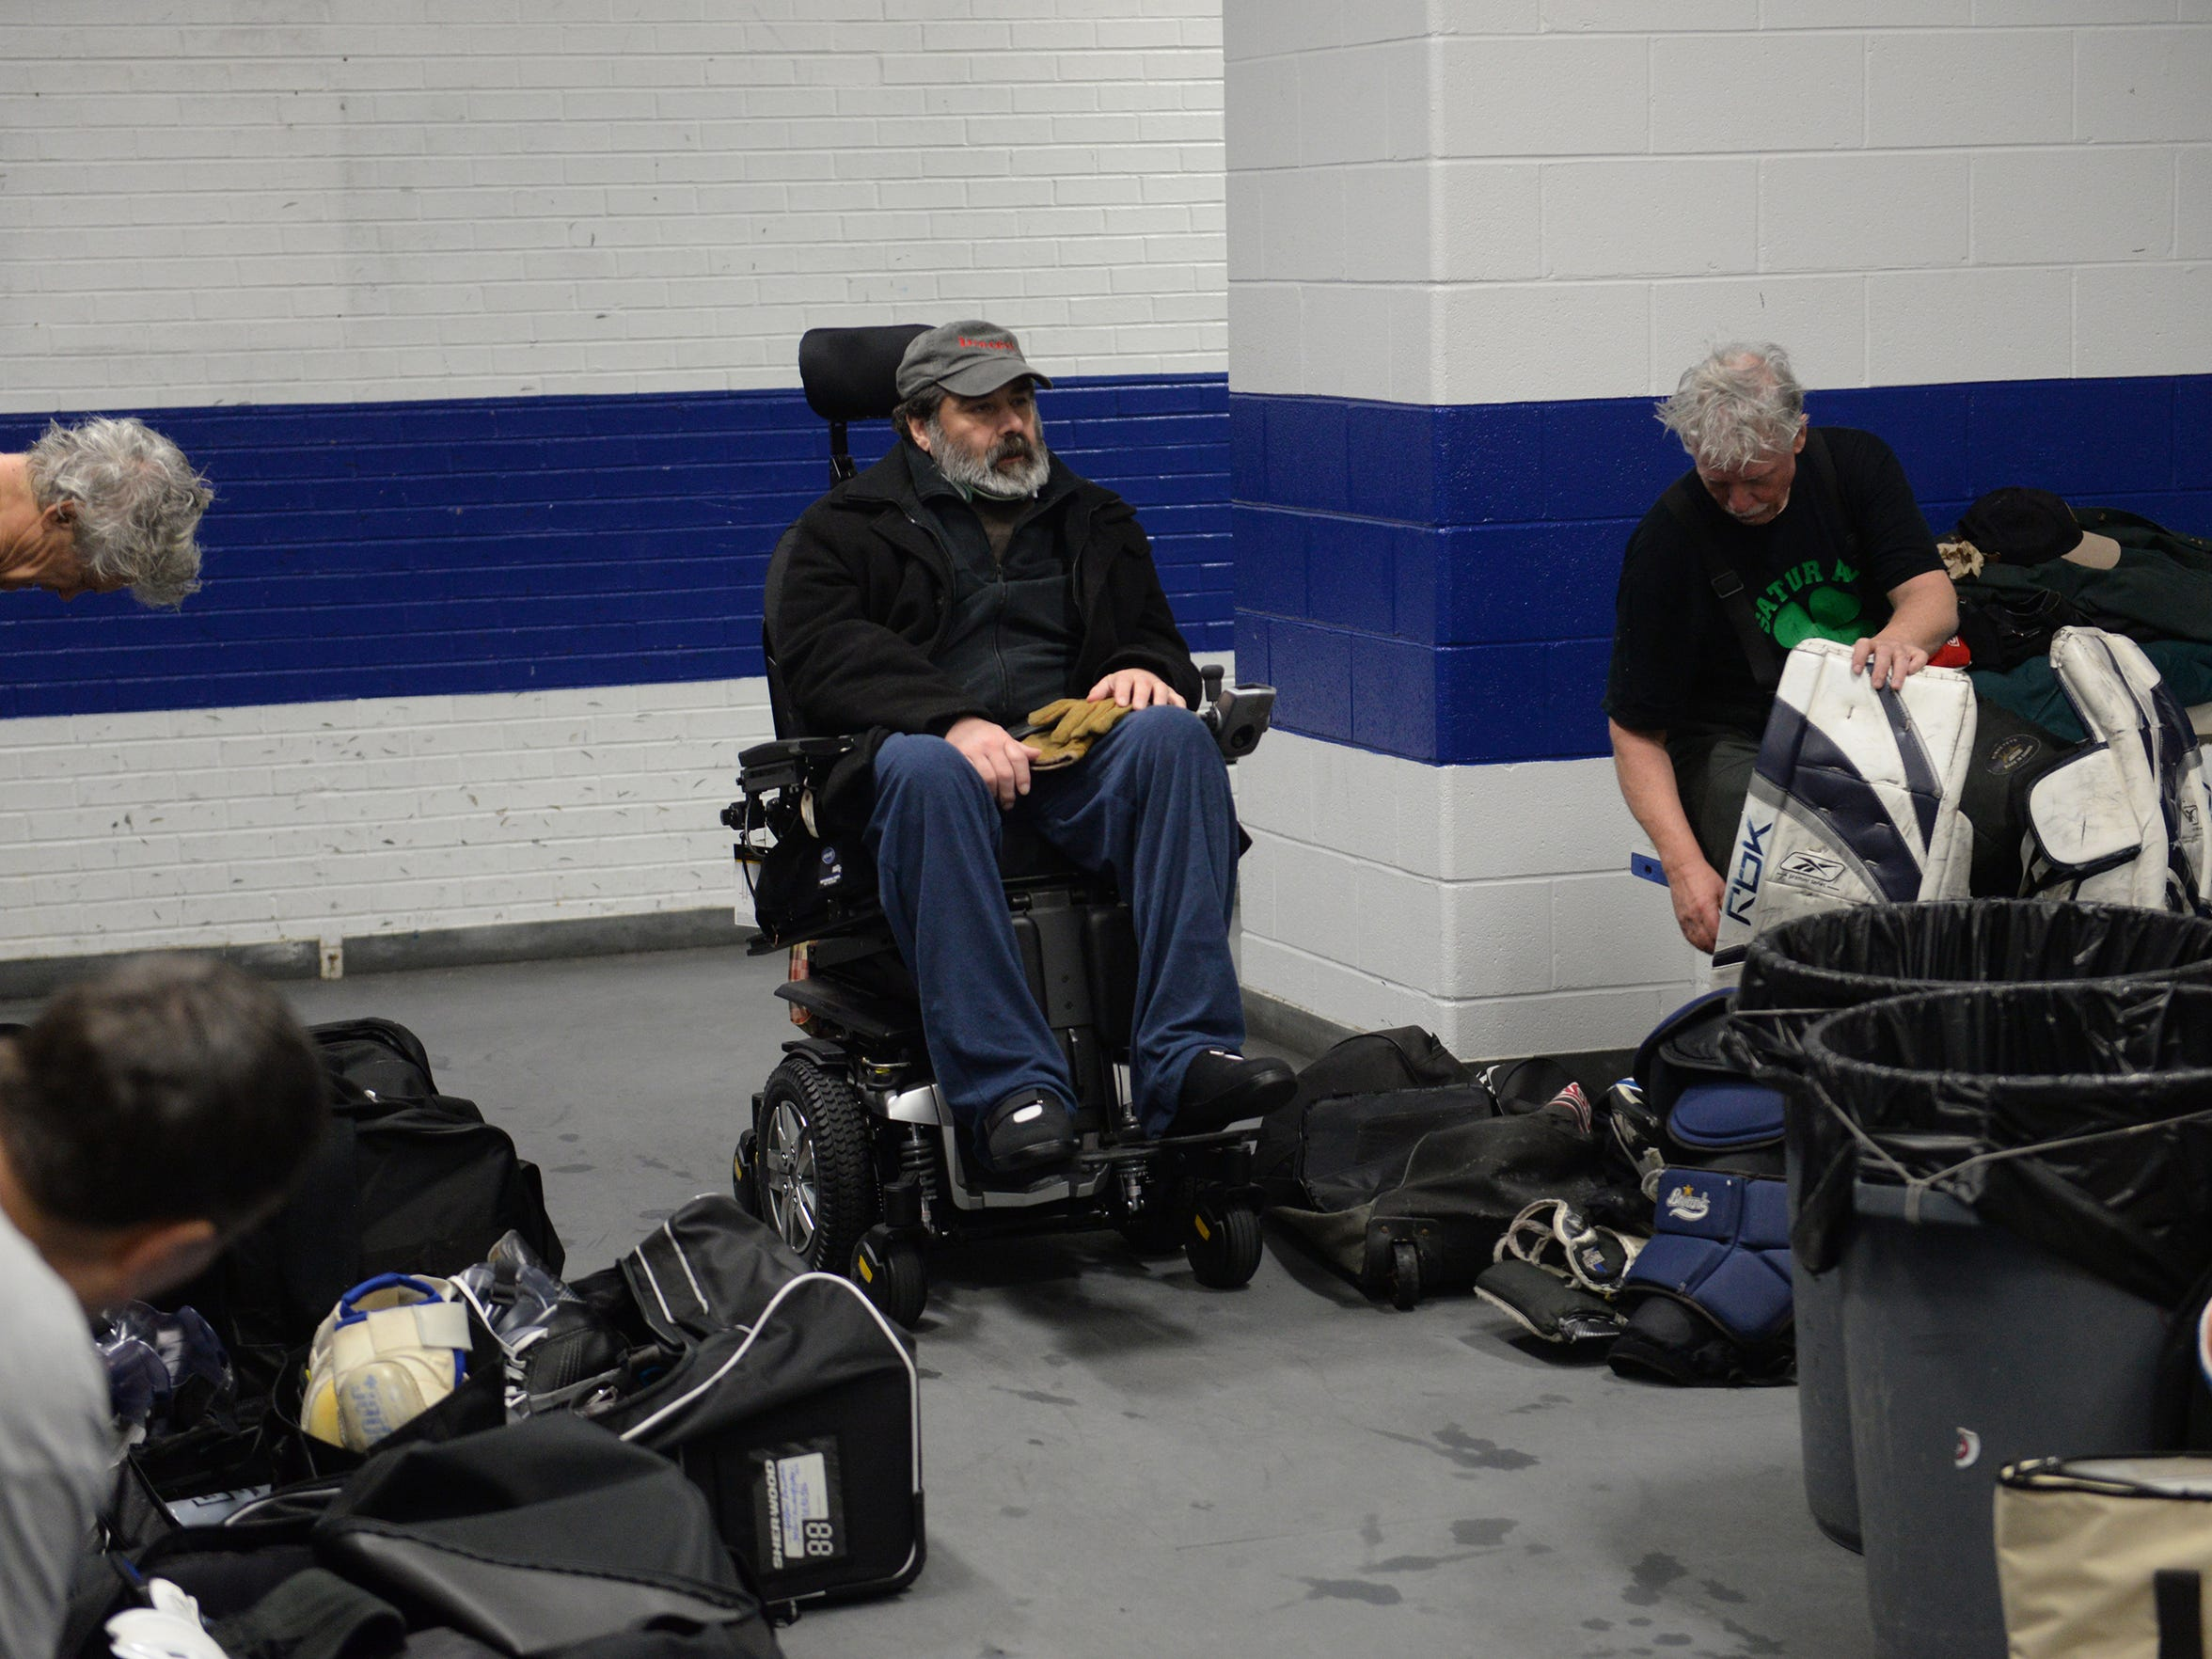 The Rev. Dimitrie Vincent visits with his hockey friends